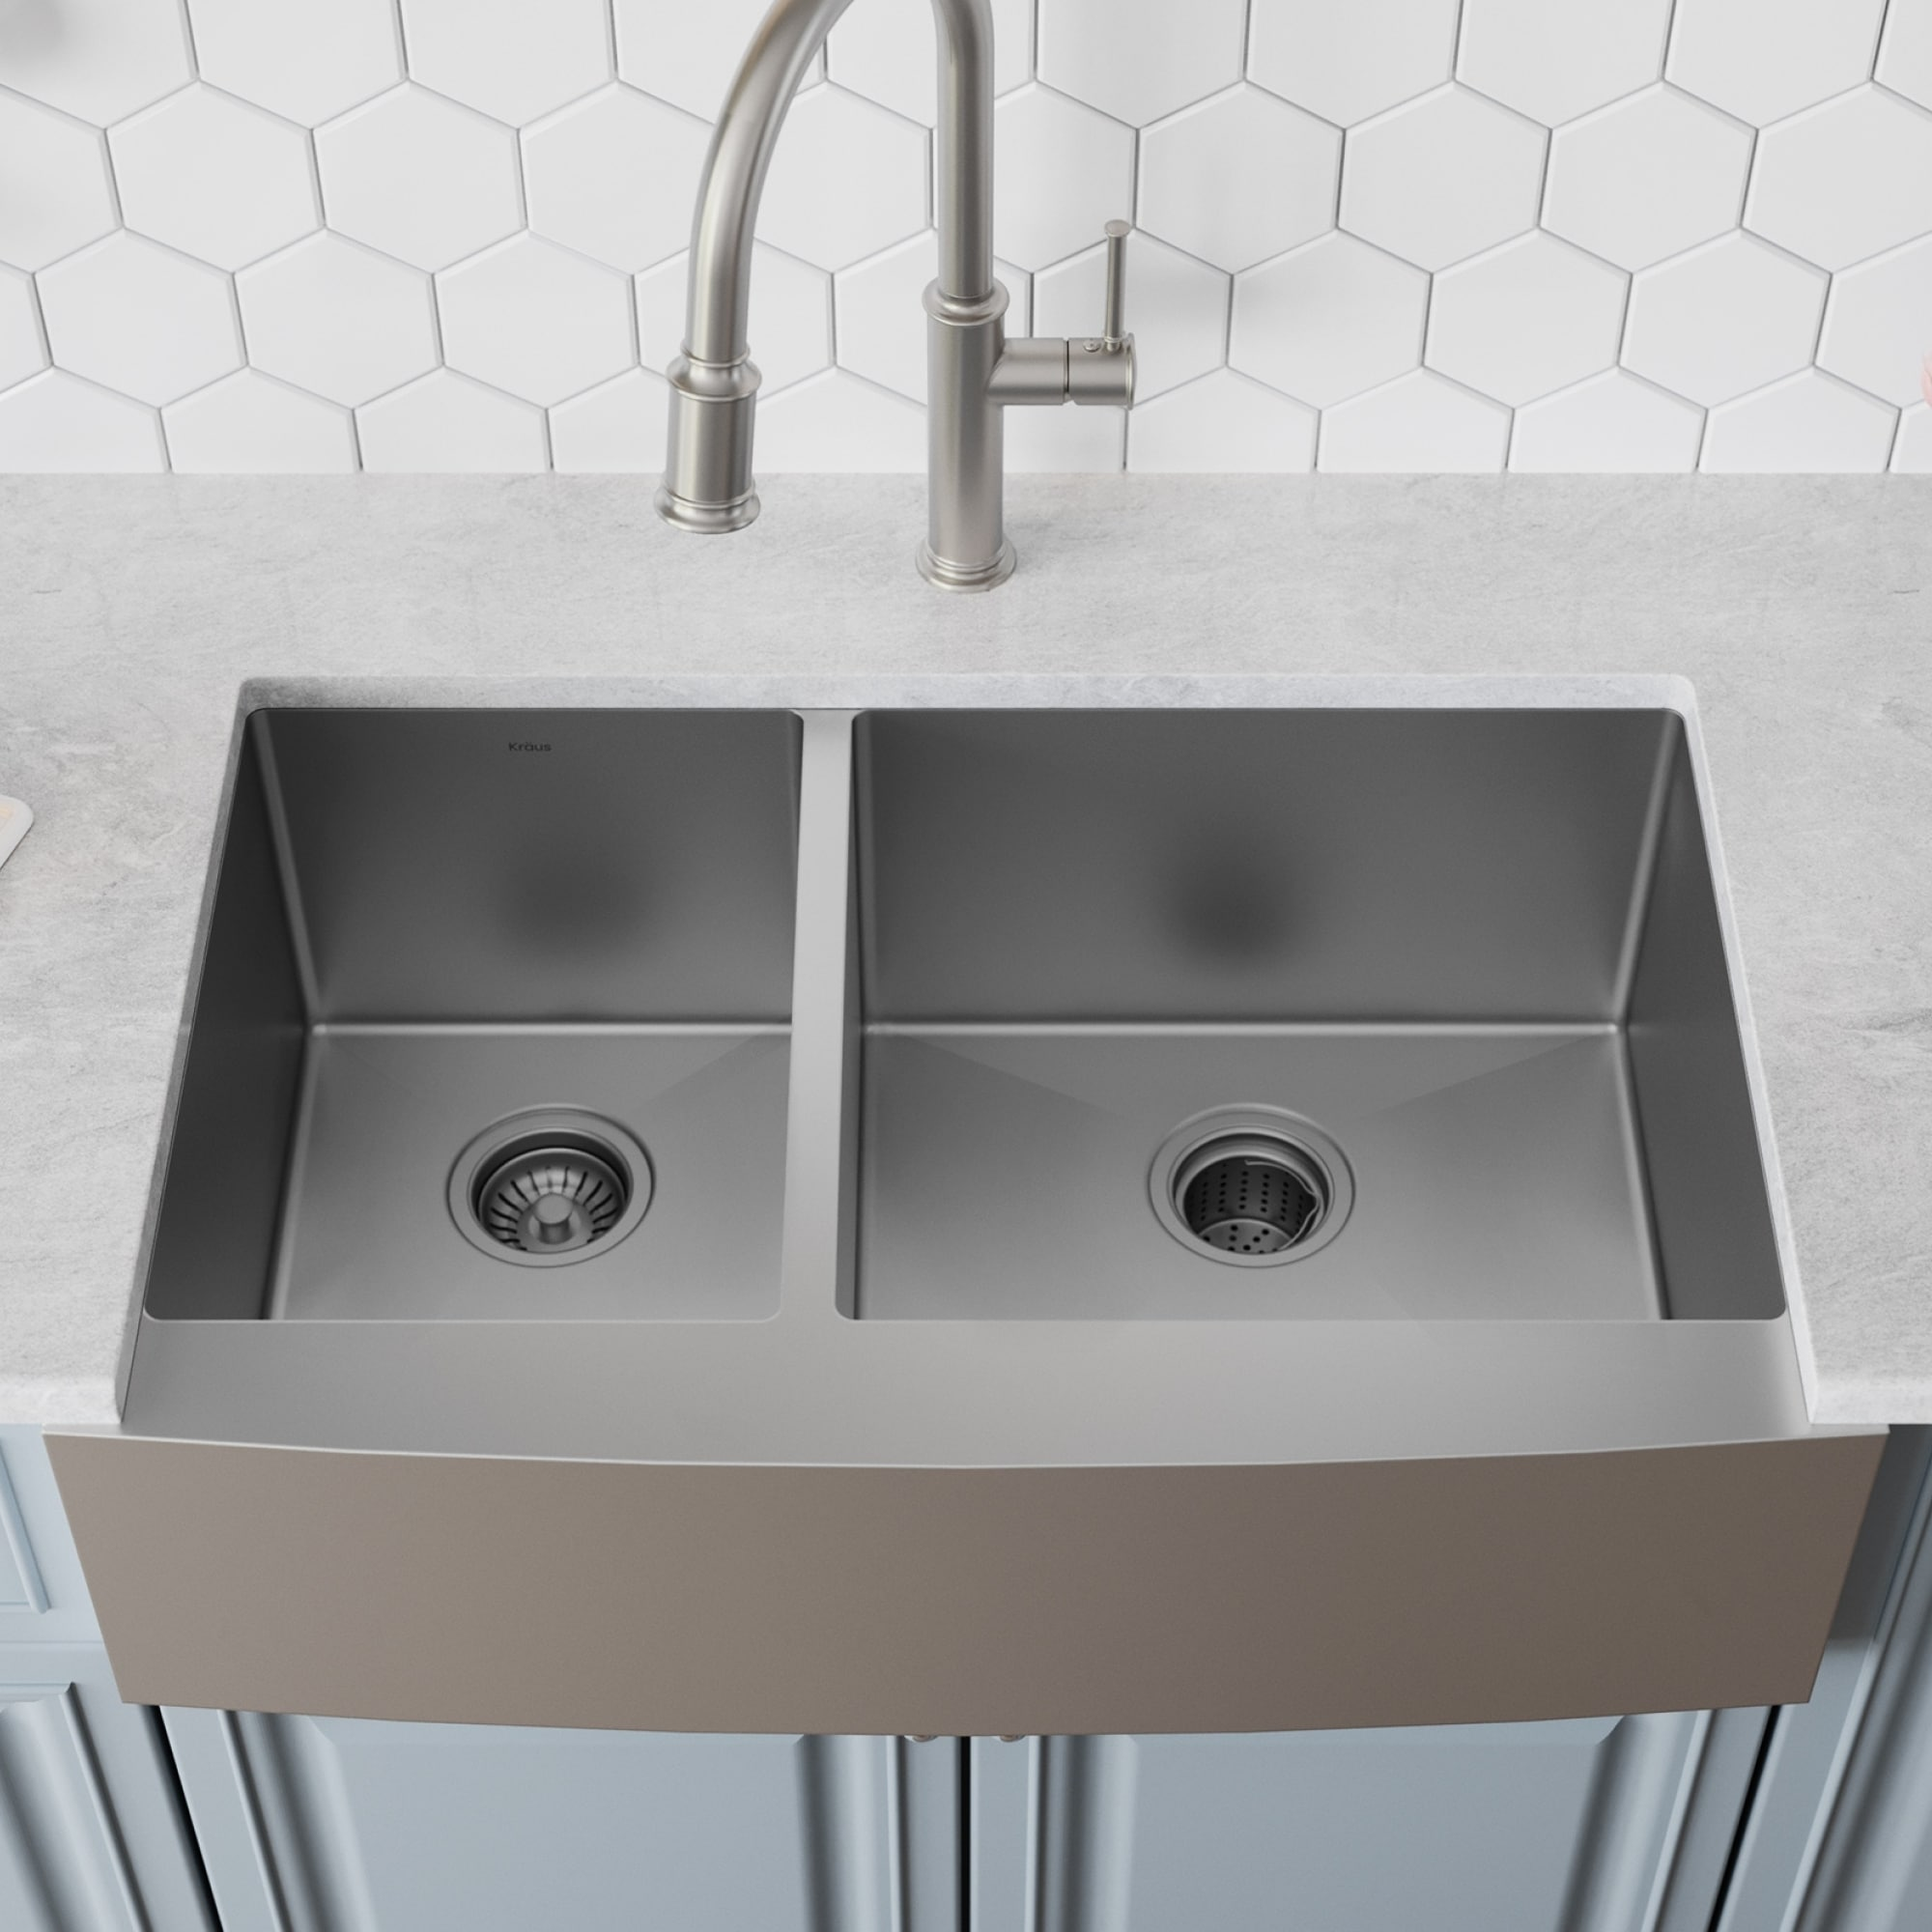 b267799cef Shop Kraus KHF204-33 Farmhouse Apron Front 33-in 16G 40/60 2-Bowl Satin Stainless  Steel Kitchen Sink, Grids, Strainers, Towel - On Sale - Free Shipping ...